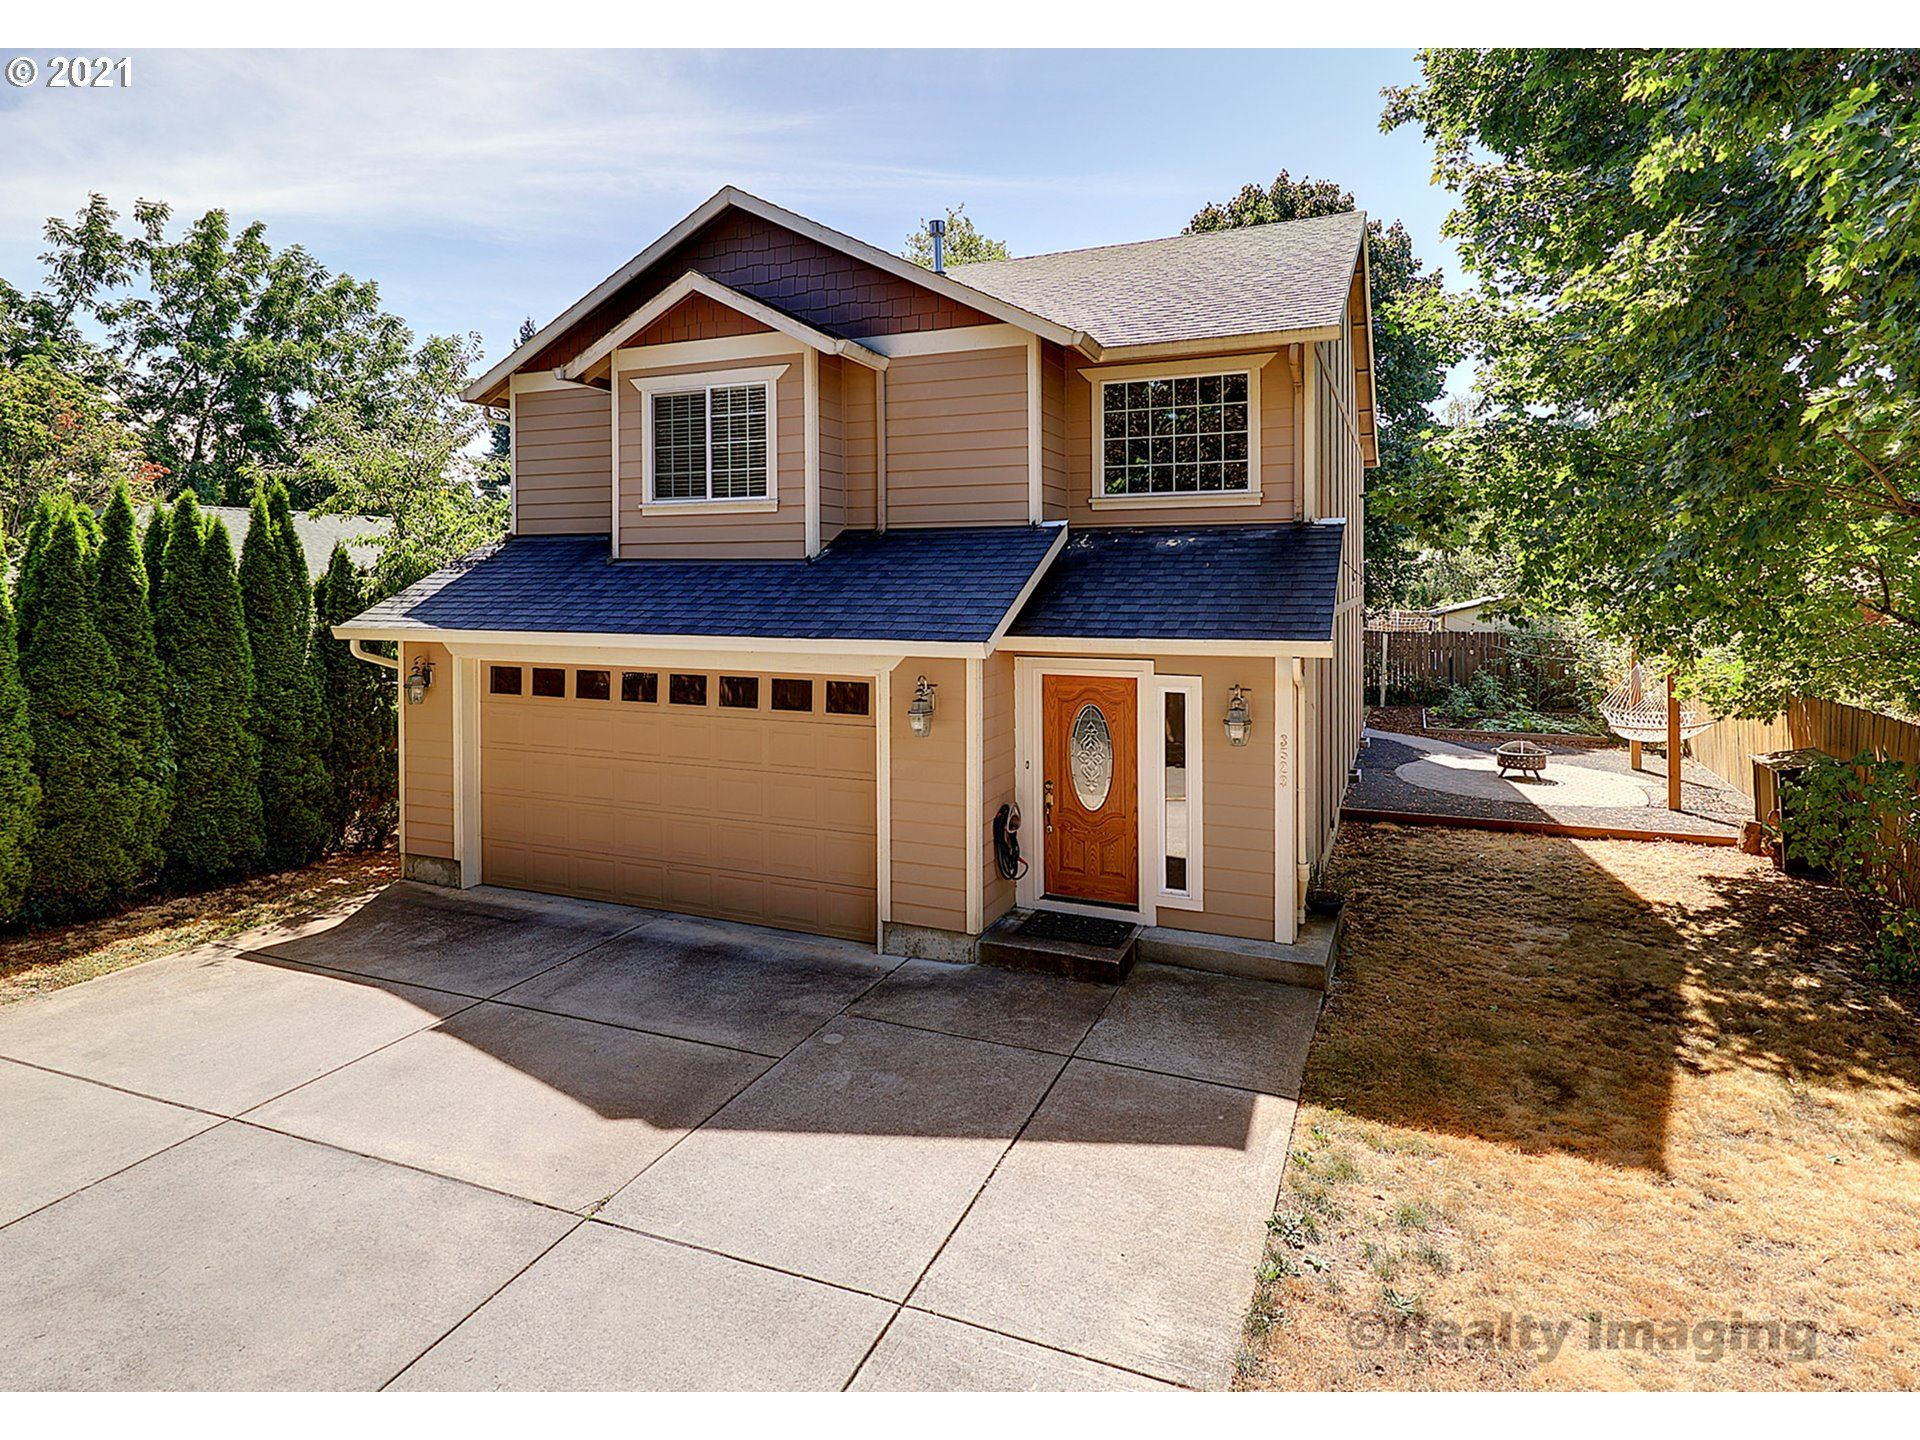 3523 SE 164TH AVE, Portland, OR 97236 - MLS#: 21038824